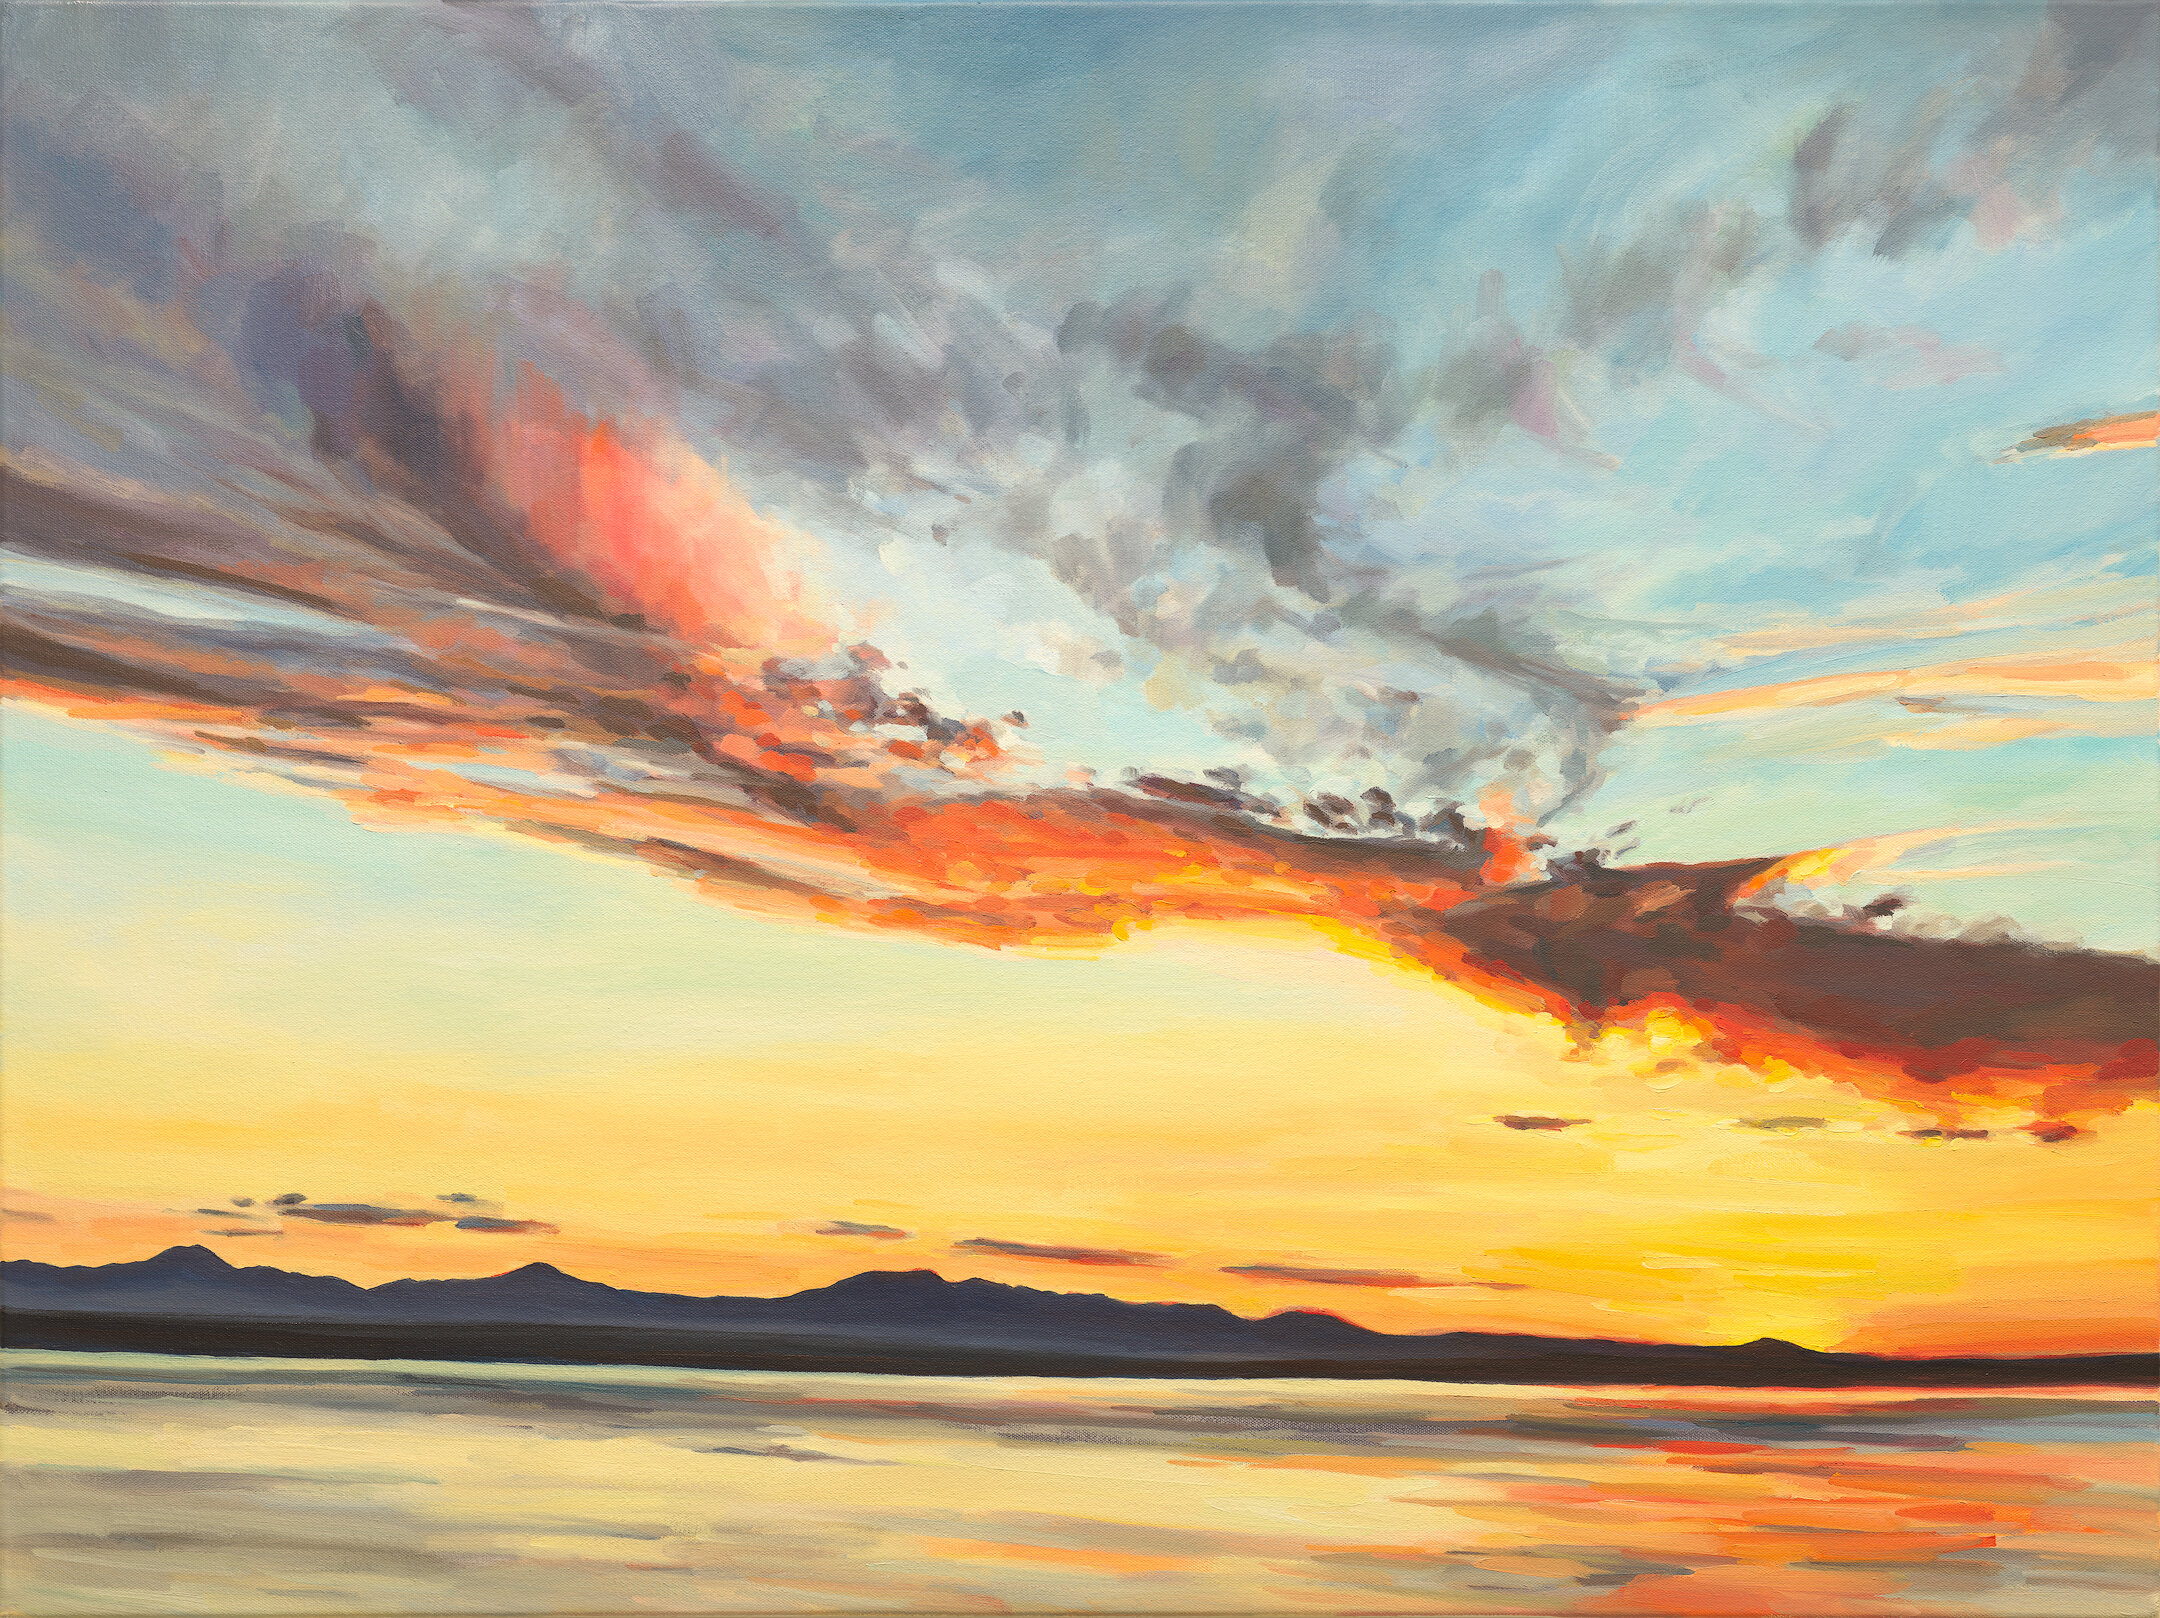 """'Alight'  2019  40"""" x 30""""  water soluble oil on canvas  sold"""